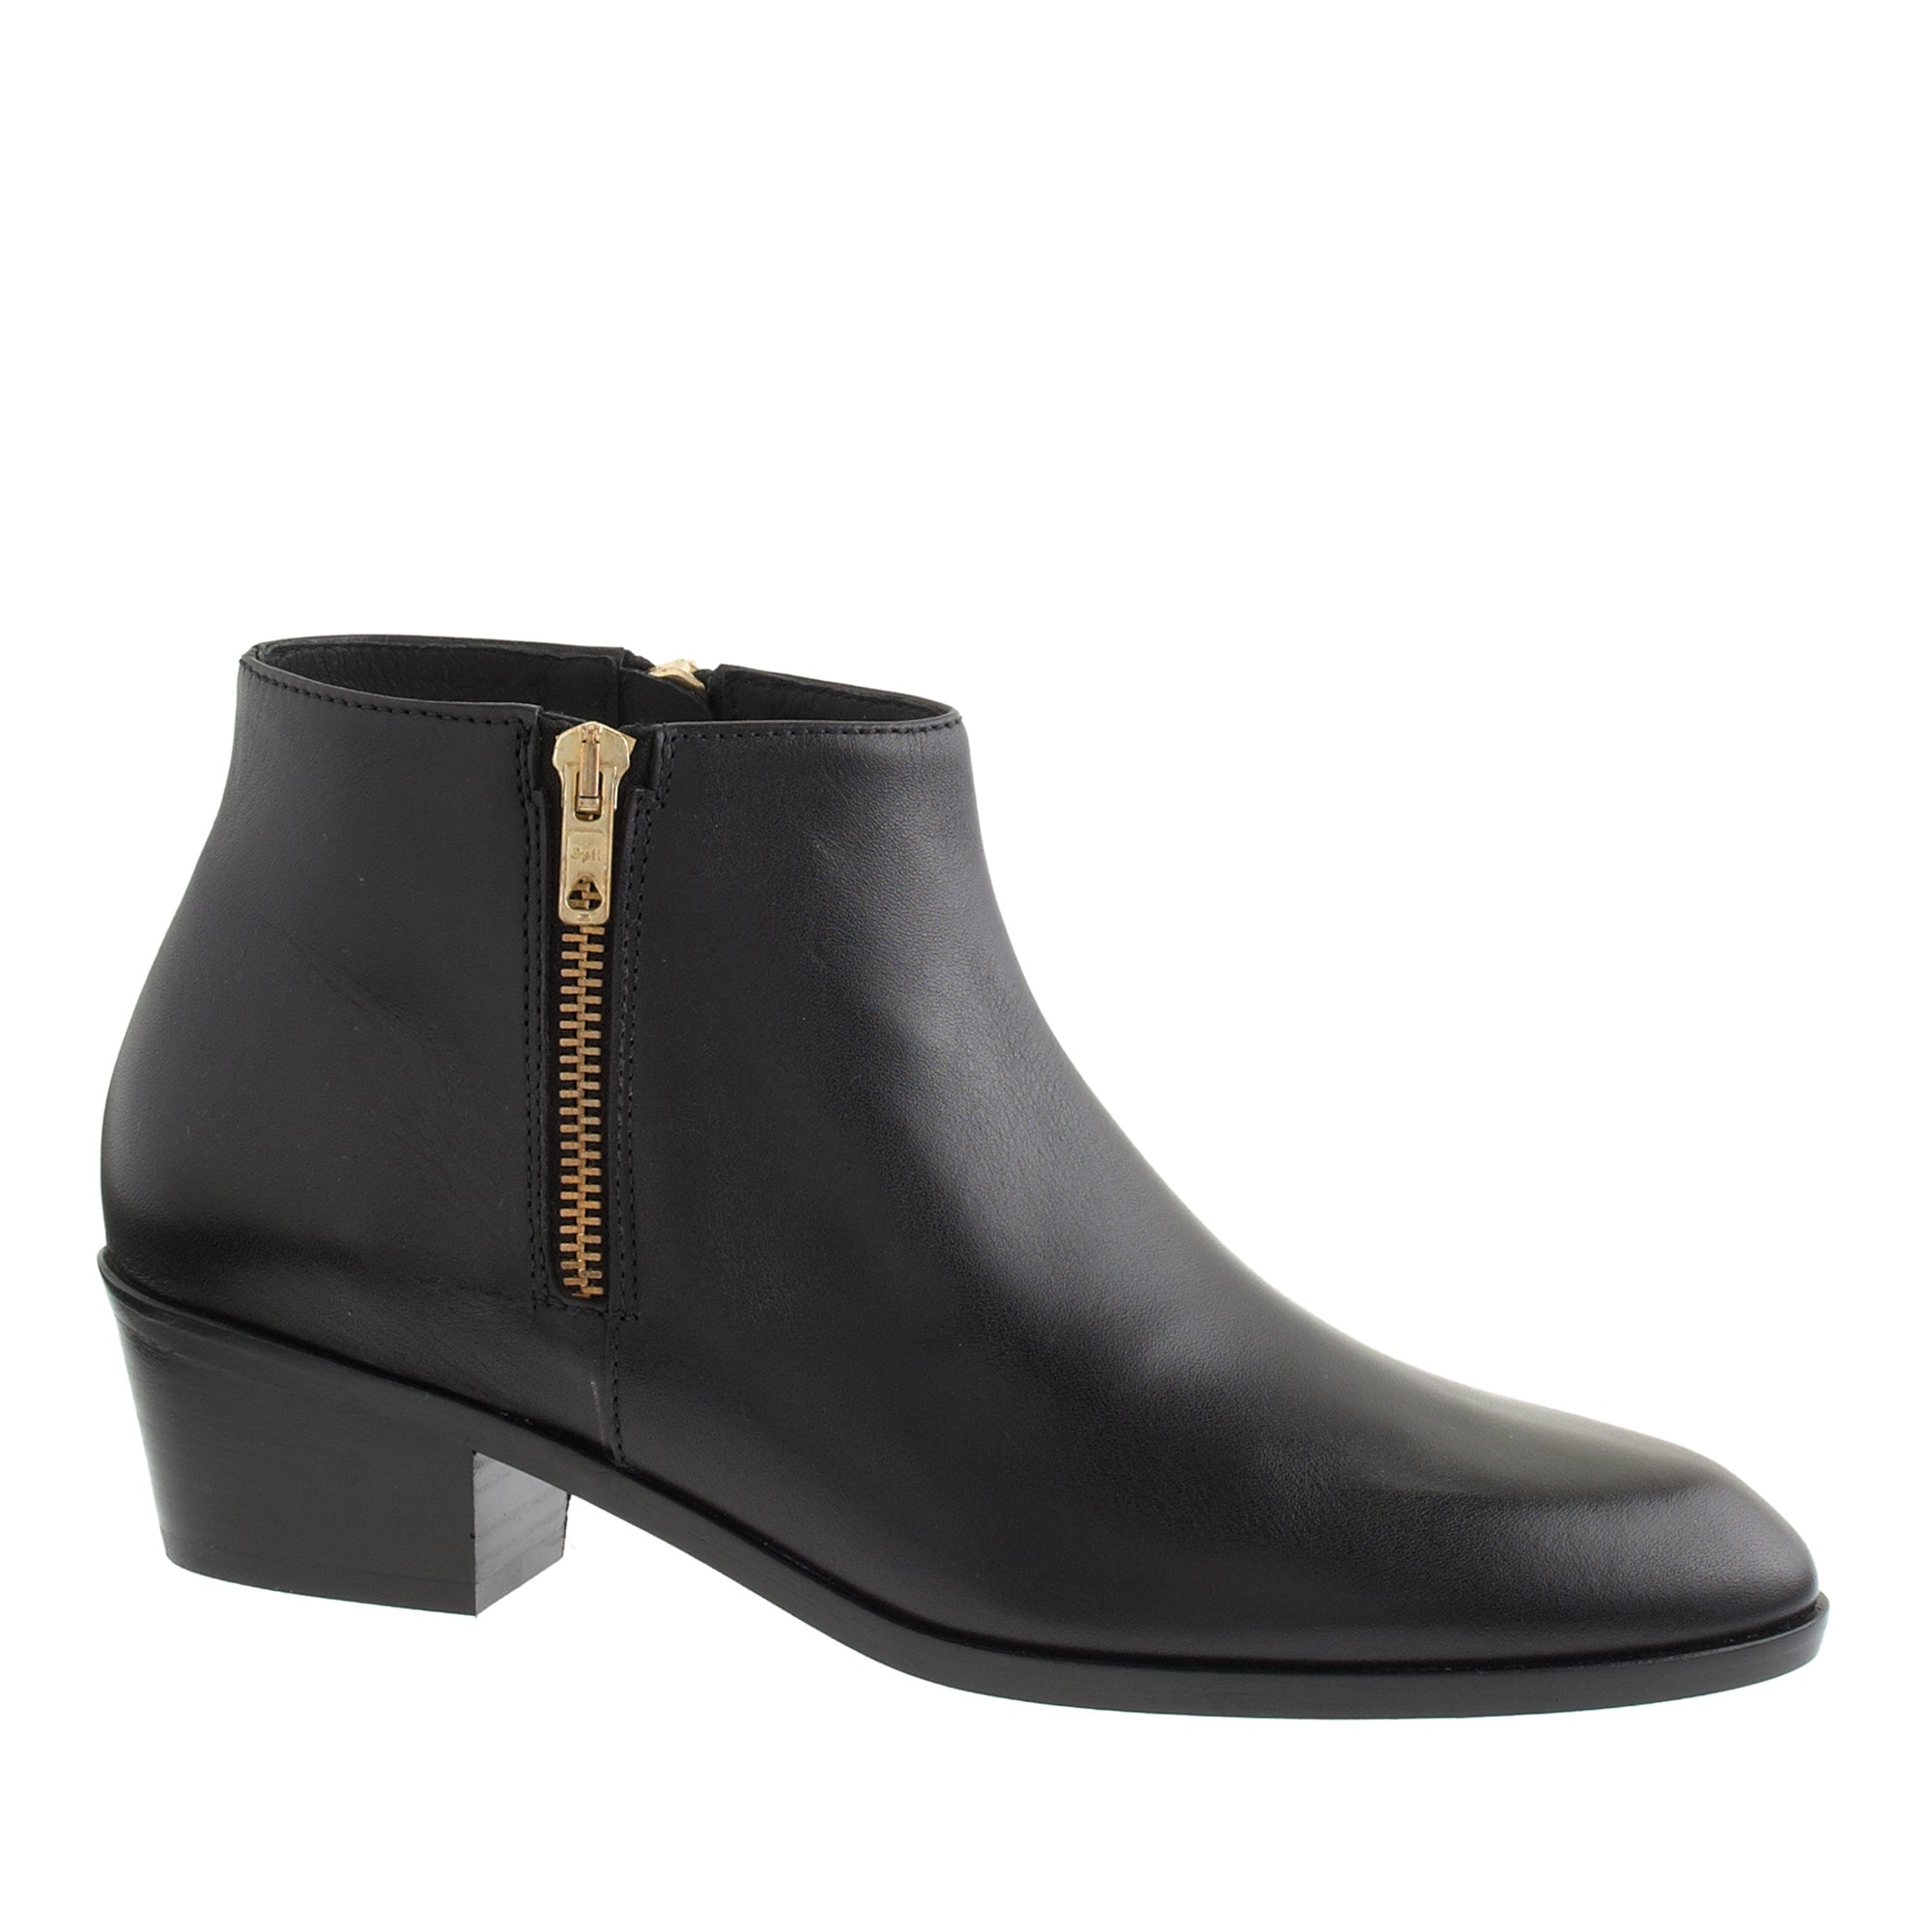 remi double-zip ankle boots : women boots